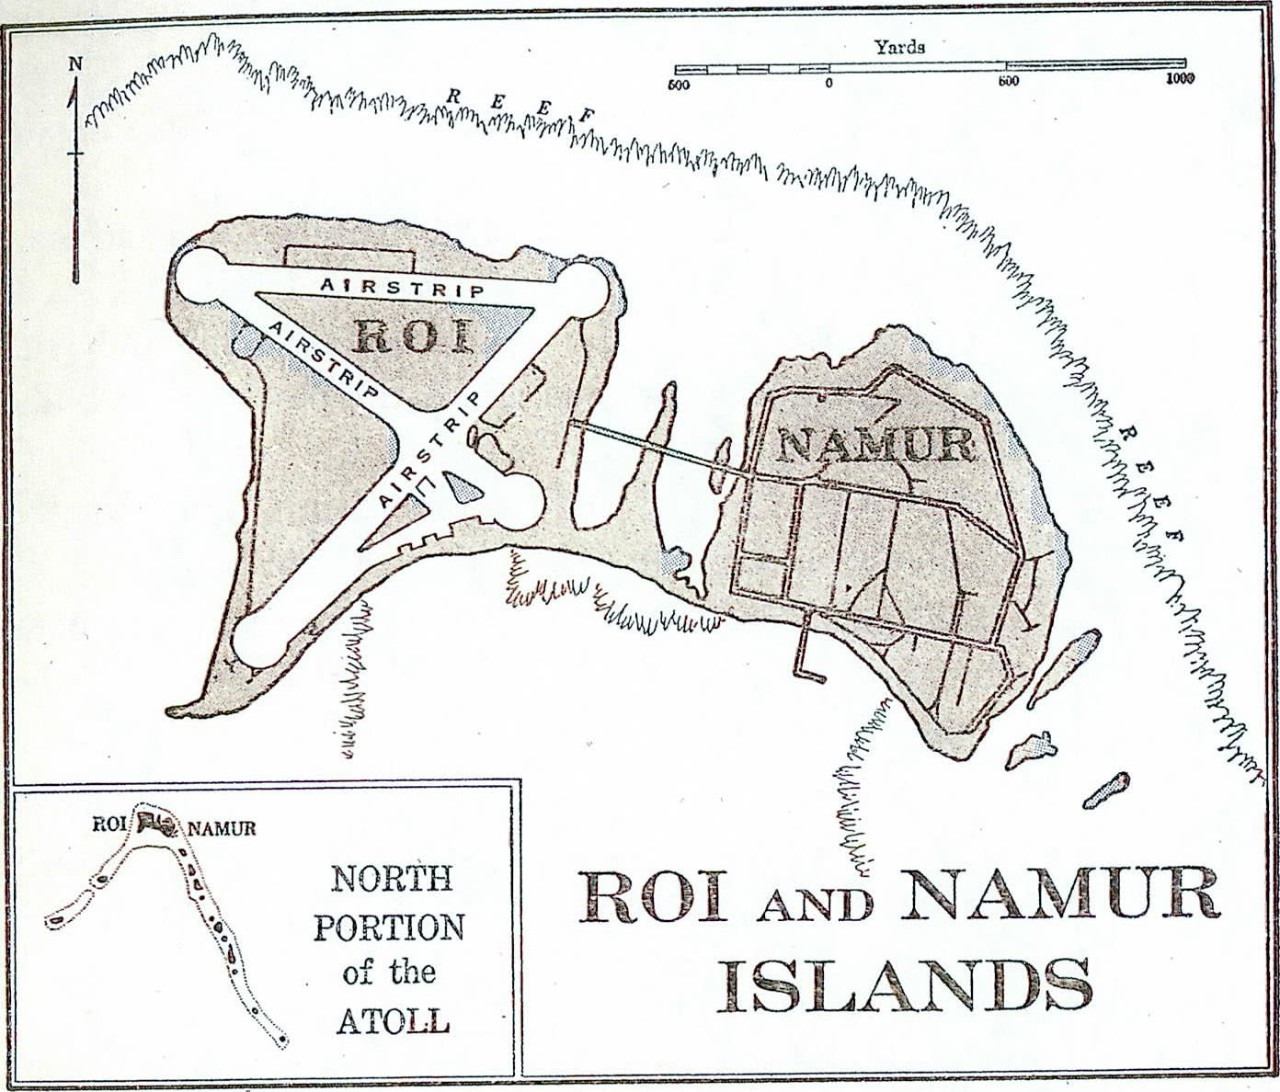 ROI and NAMUR Islands